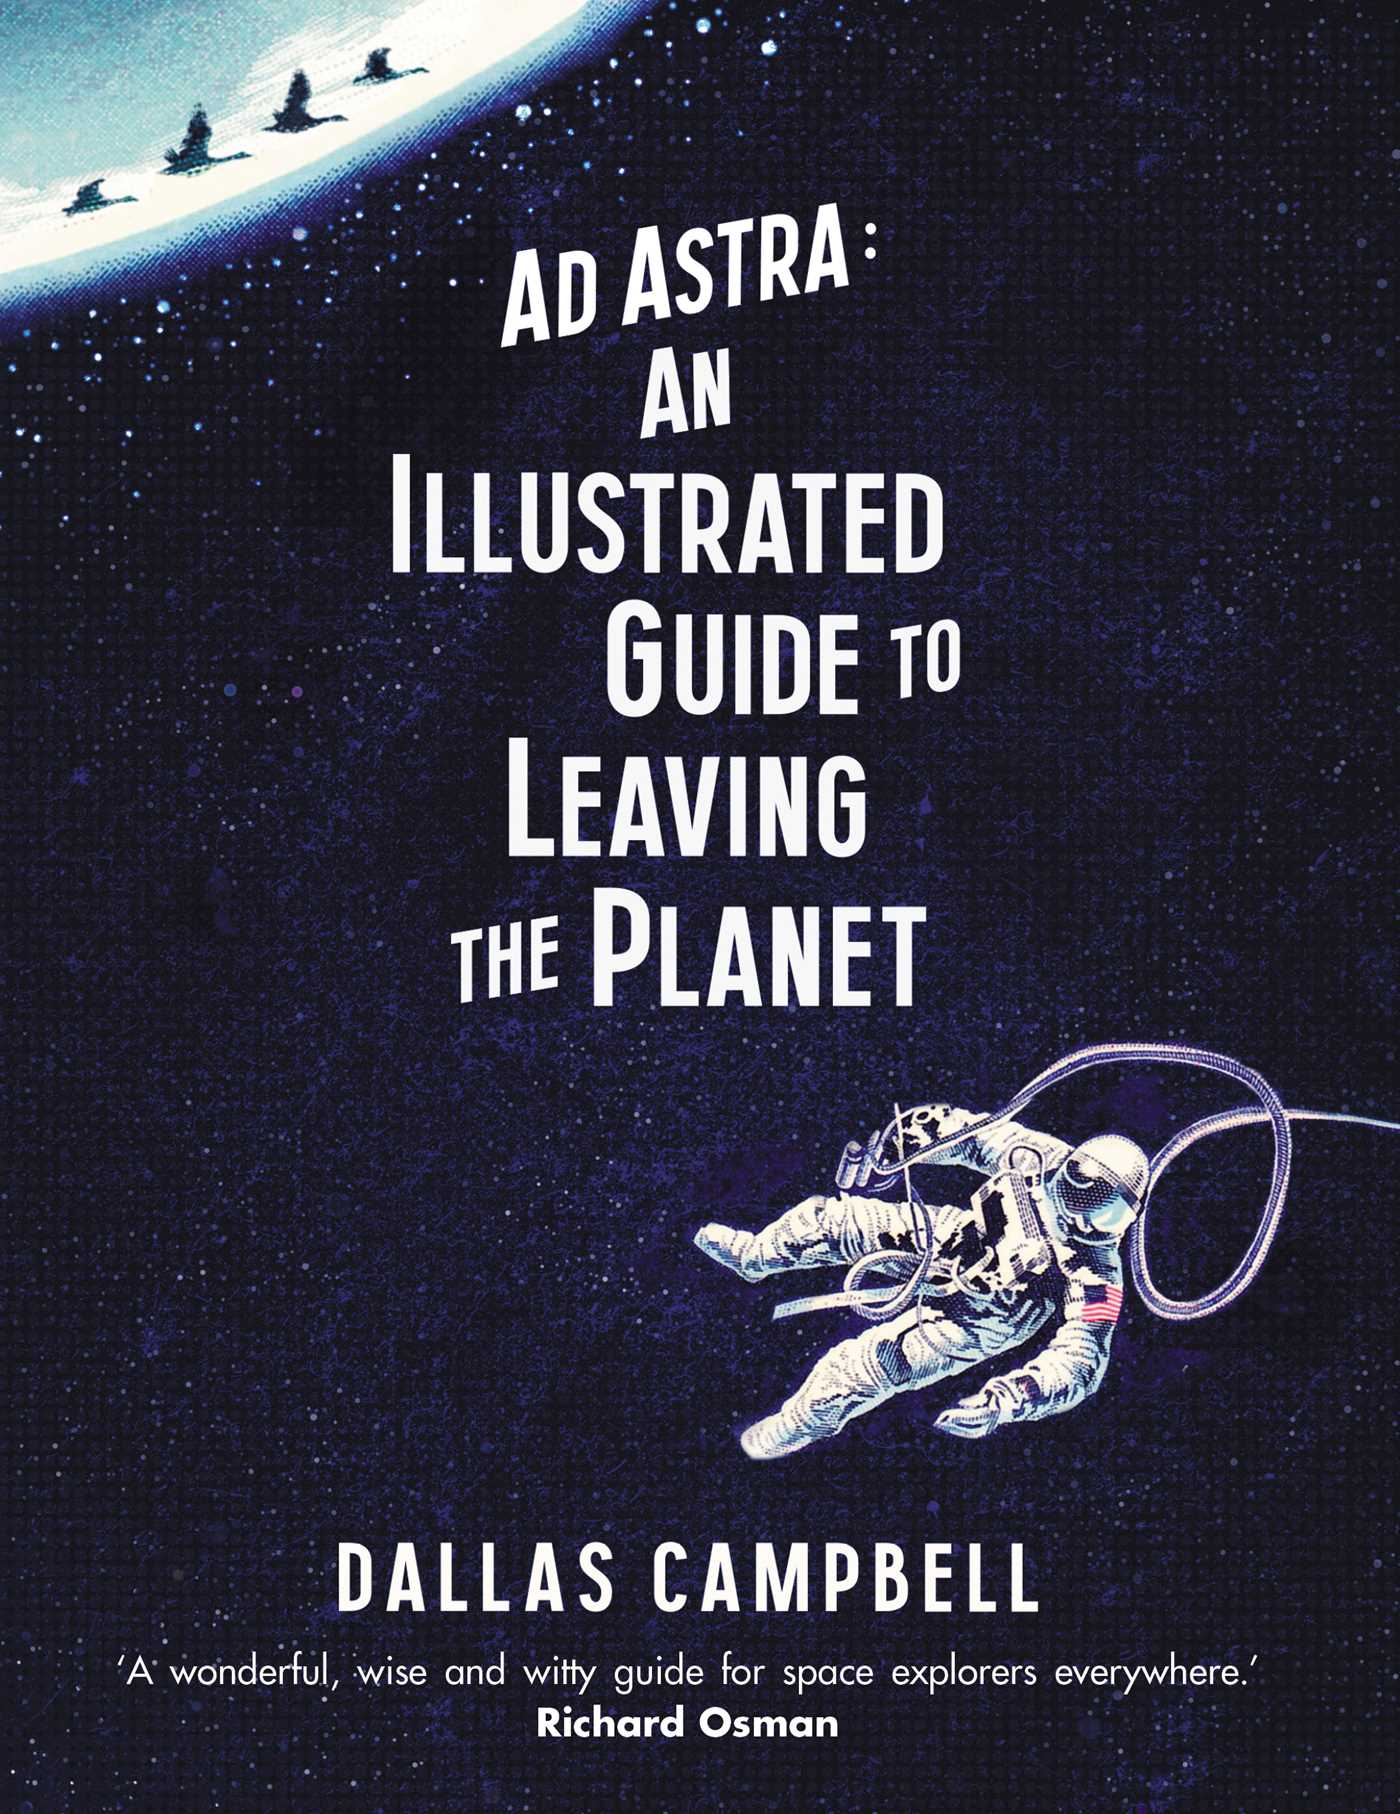 Ad astra an illustrated guide to leaving the planet 9781471164064 hr